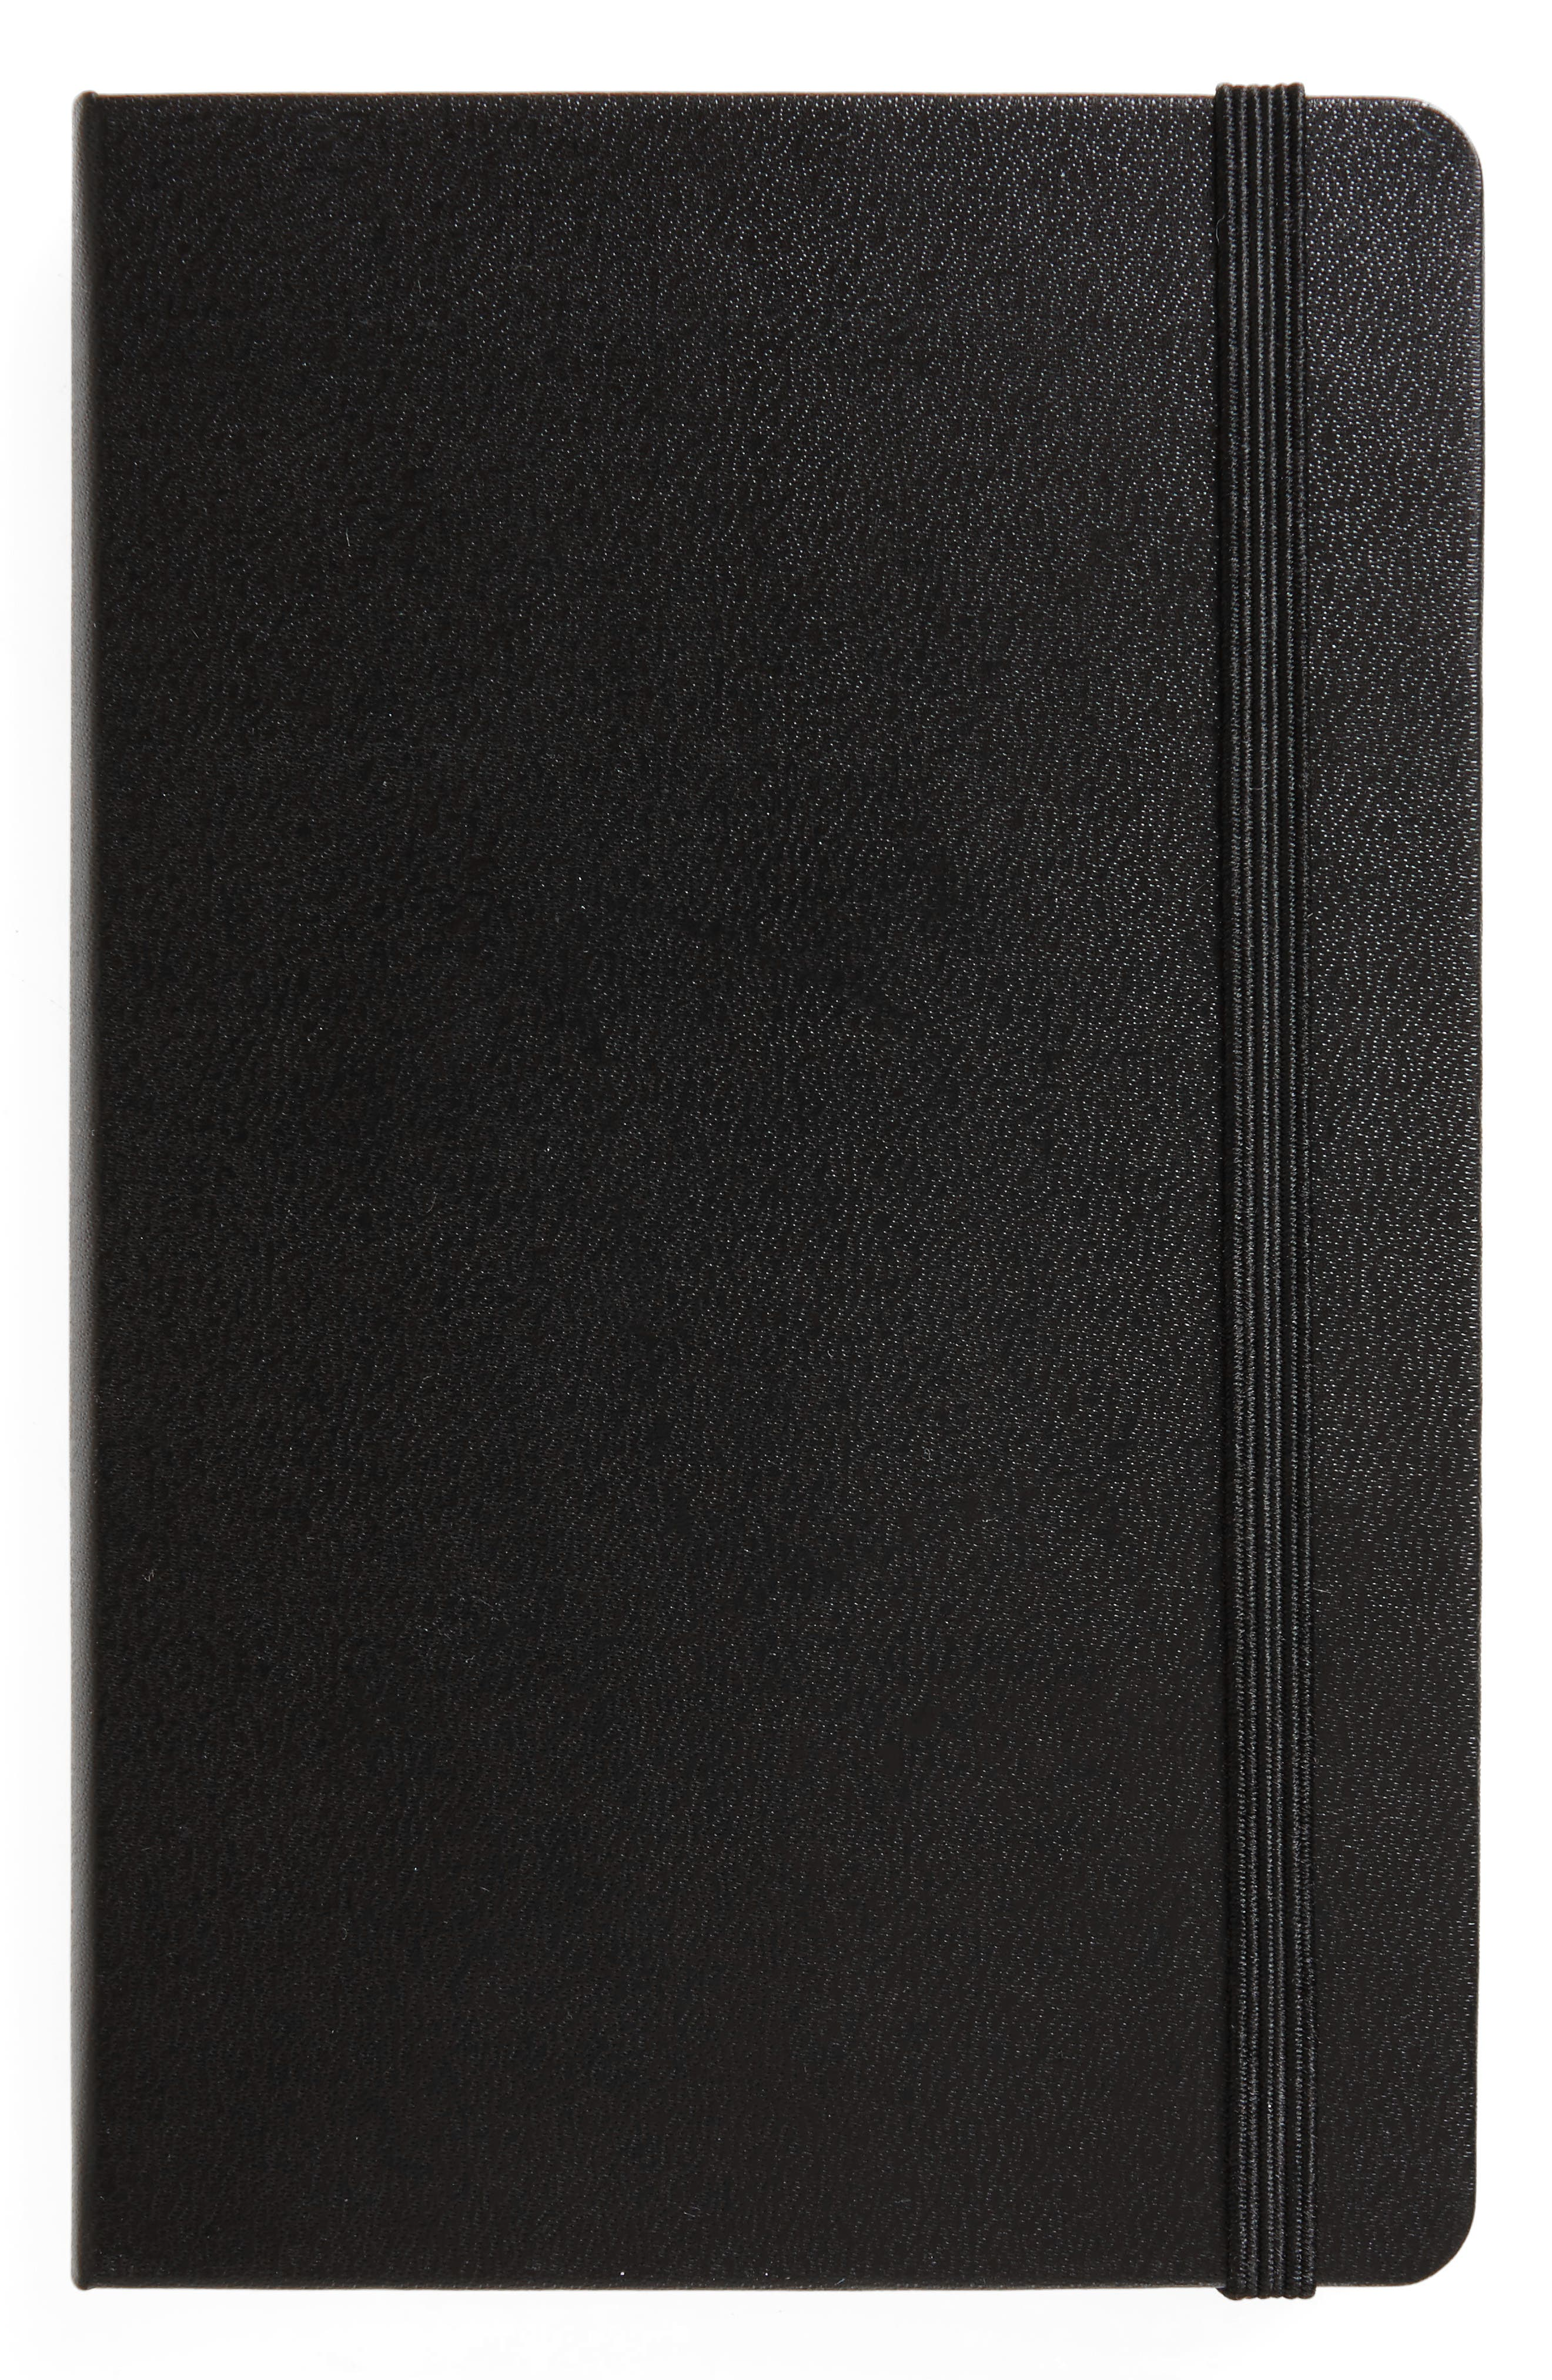 Classic Ruled Pocket Hardcover Notebook,                             Main thumbnail 1, color,                             001